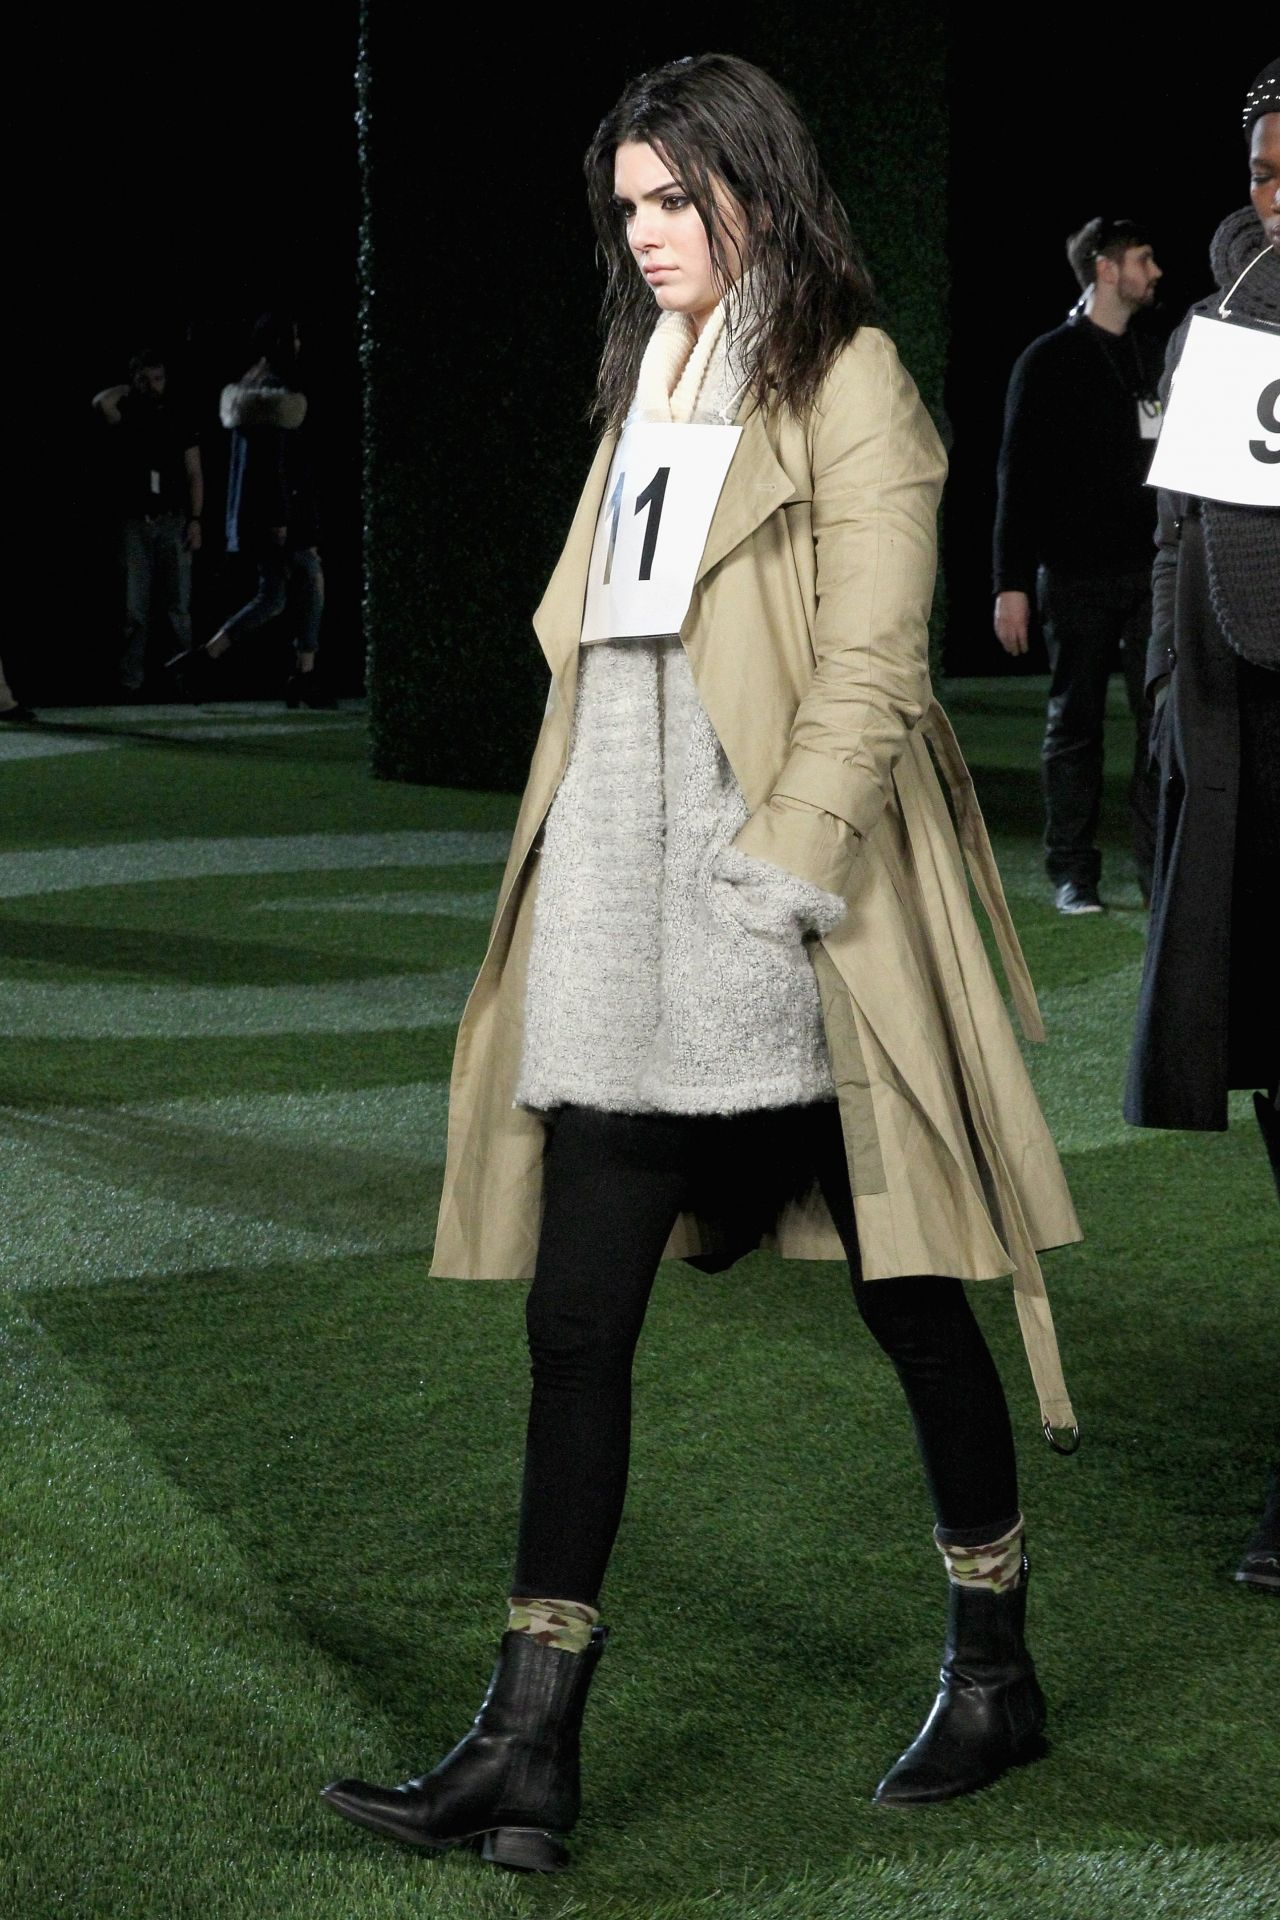 Kendall Jenner Walks The Runway And Backstage Photos, February 2015